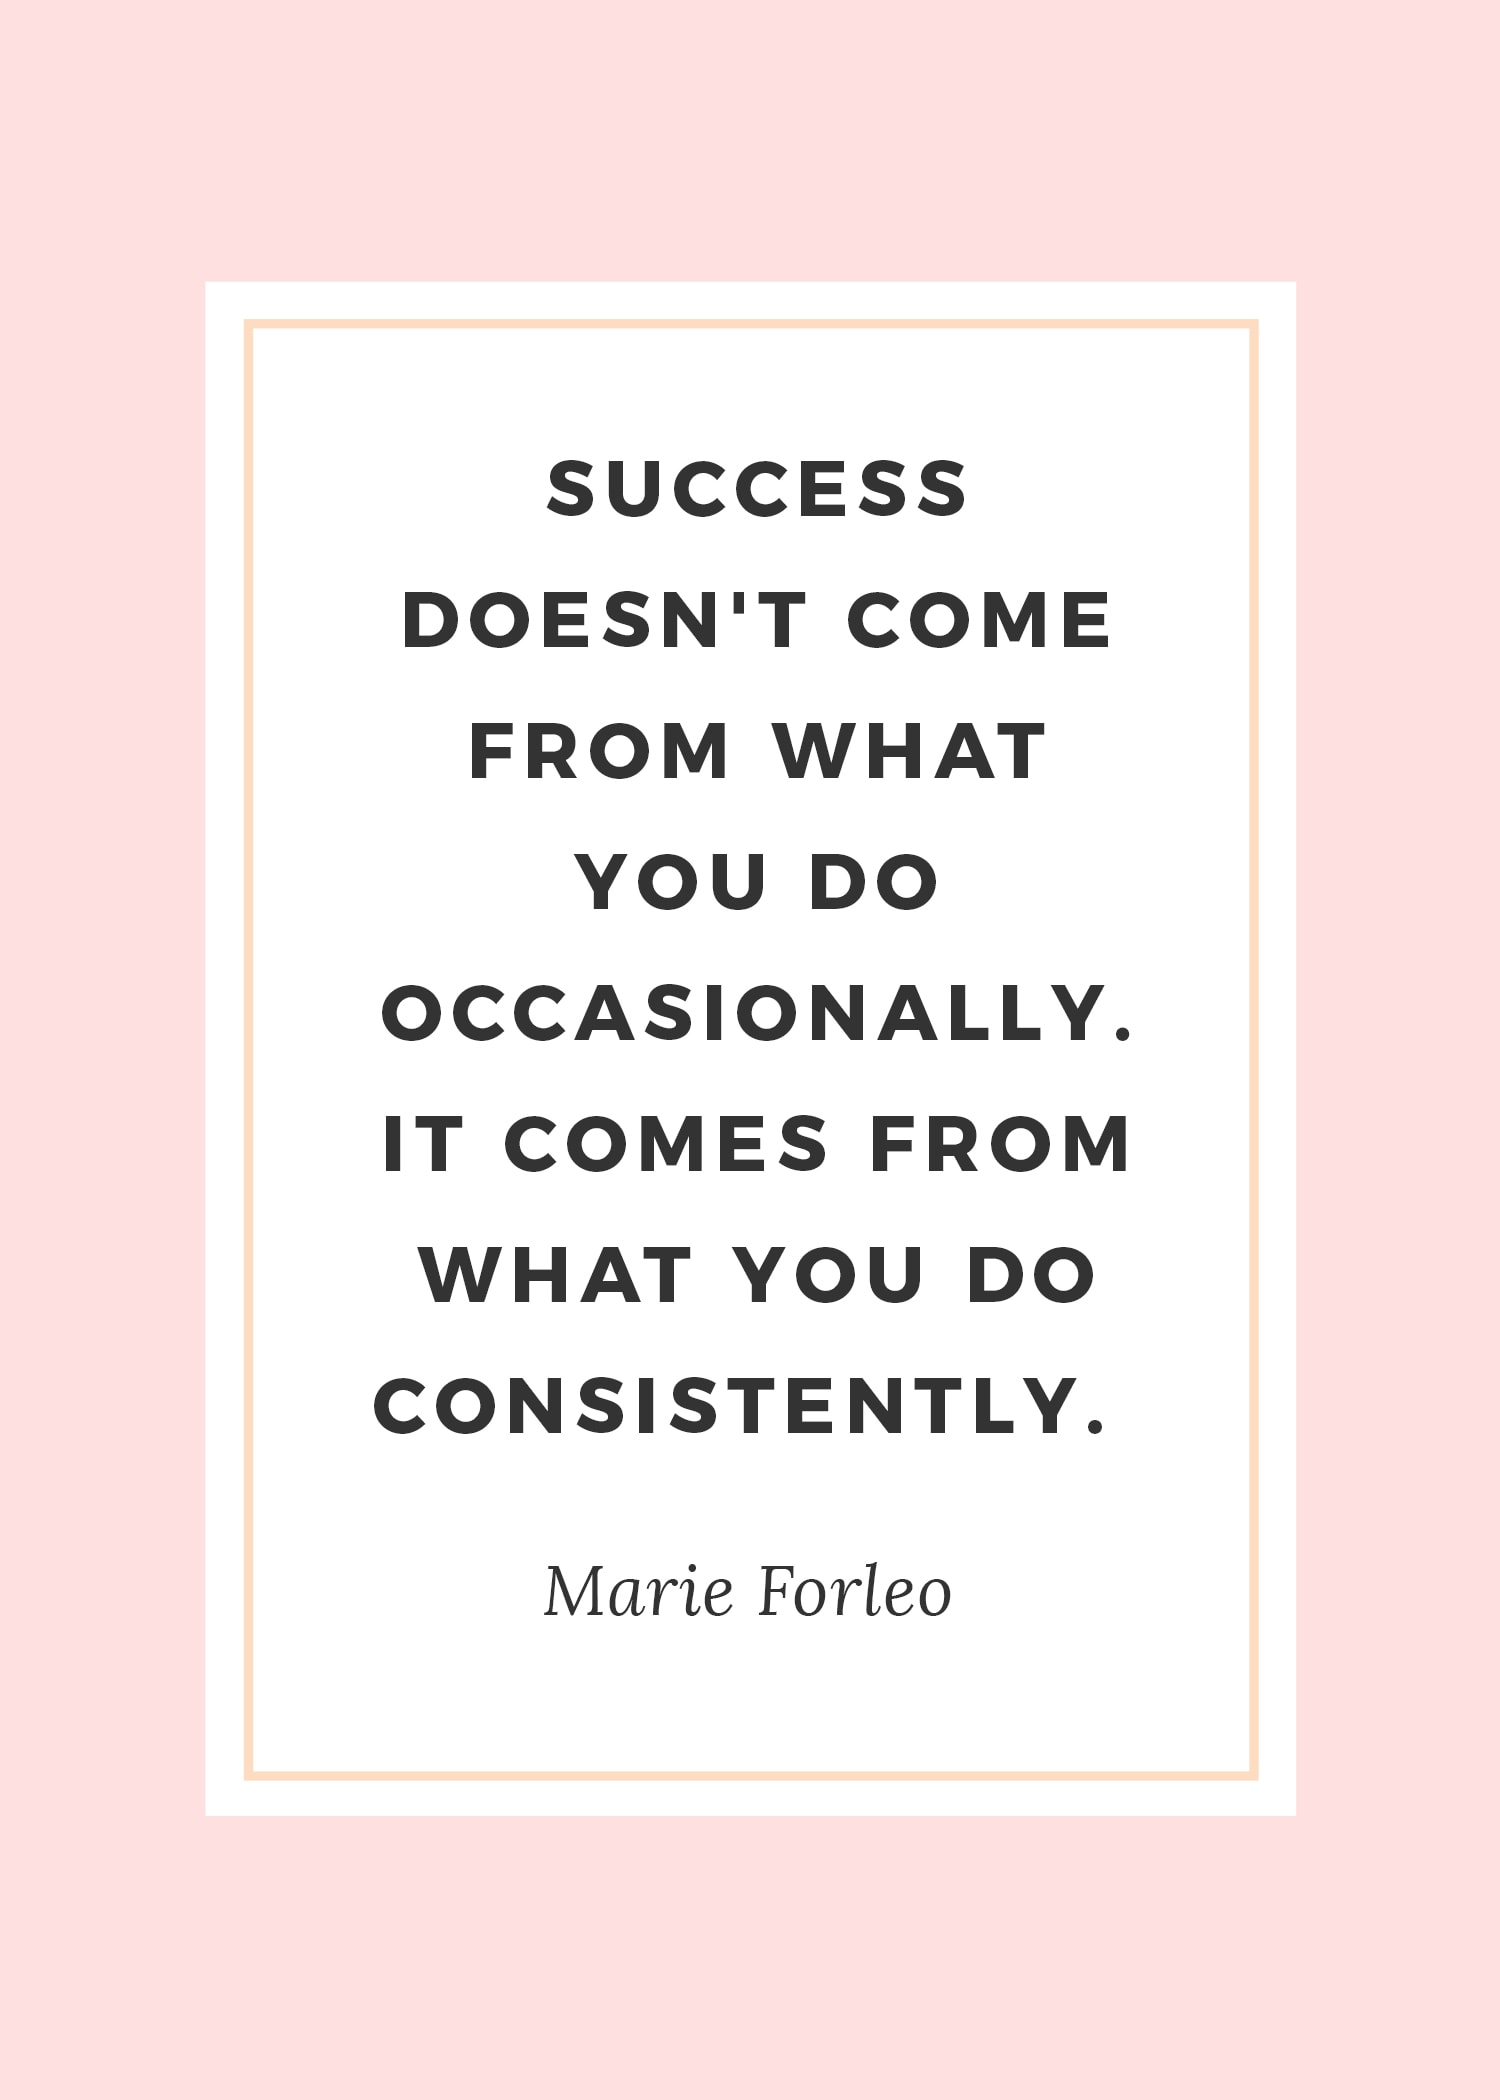 Motivational Football Quotes Wallpaper 10 Quotes For Every Girl Boss Ashley Brooke Nicholas